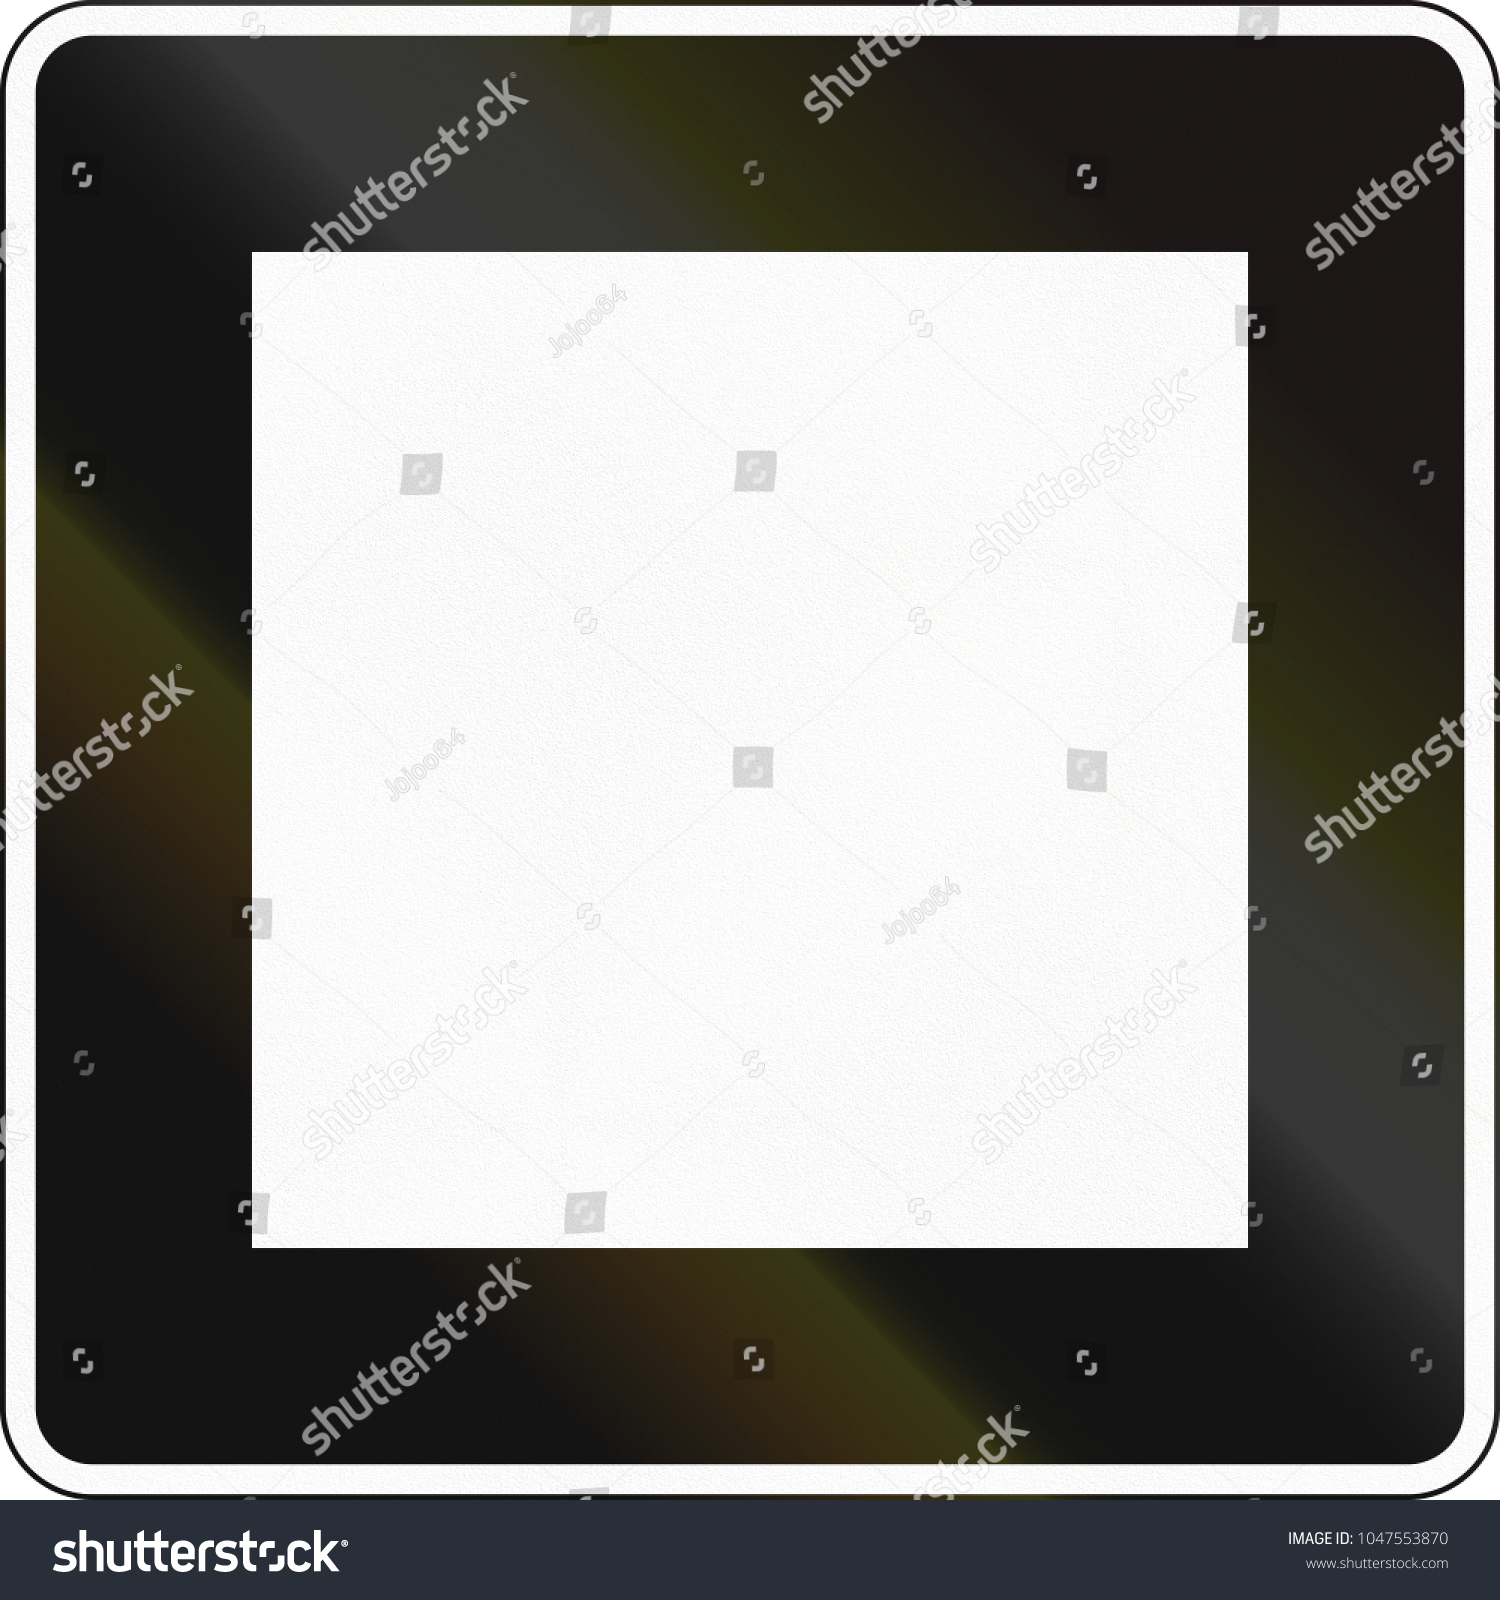 stock photo german inland water navigation sign border of a passing place at the kiel canal 1047553870 german inland water navigation sign border stock illustration